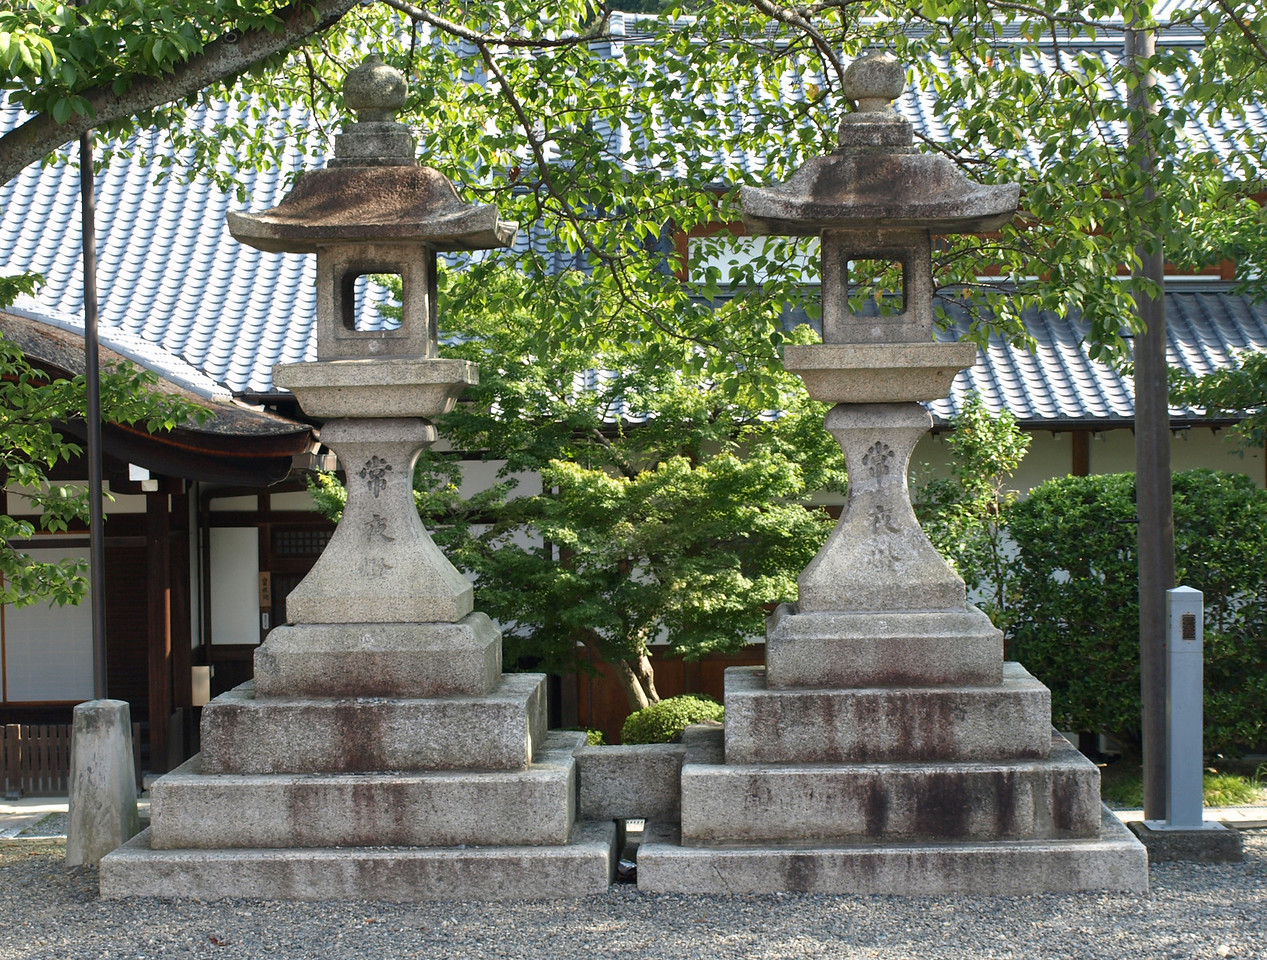 Stone lanterns provided illumination in the centuries before electricity